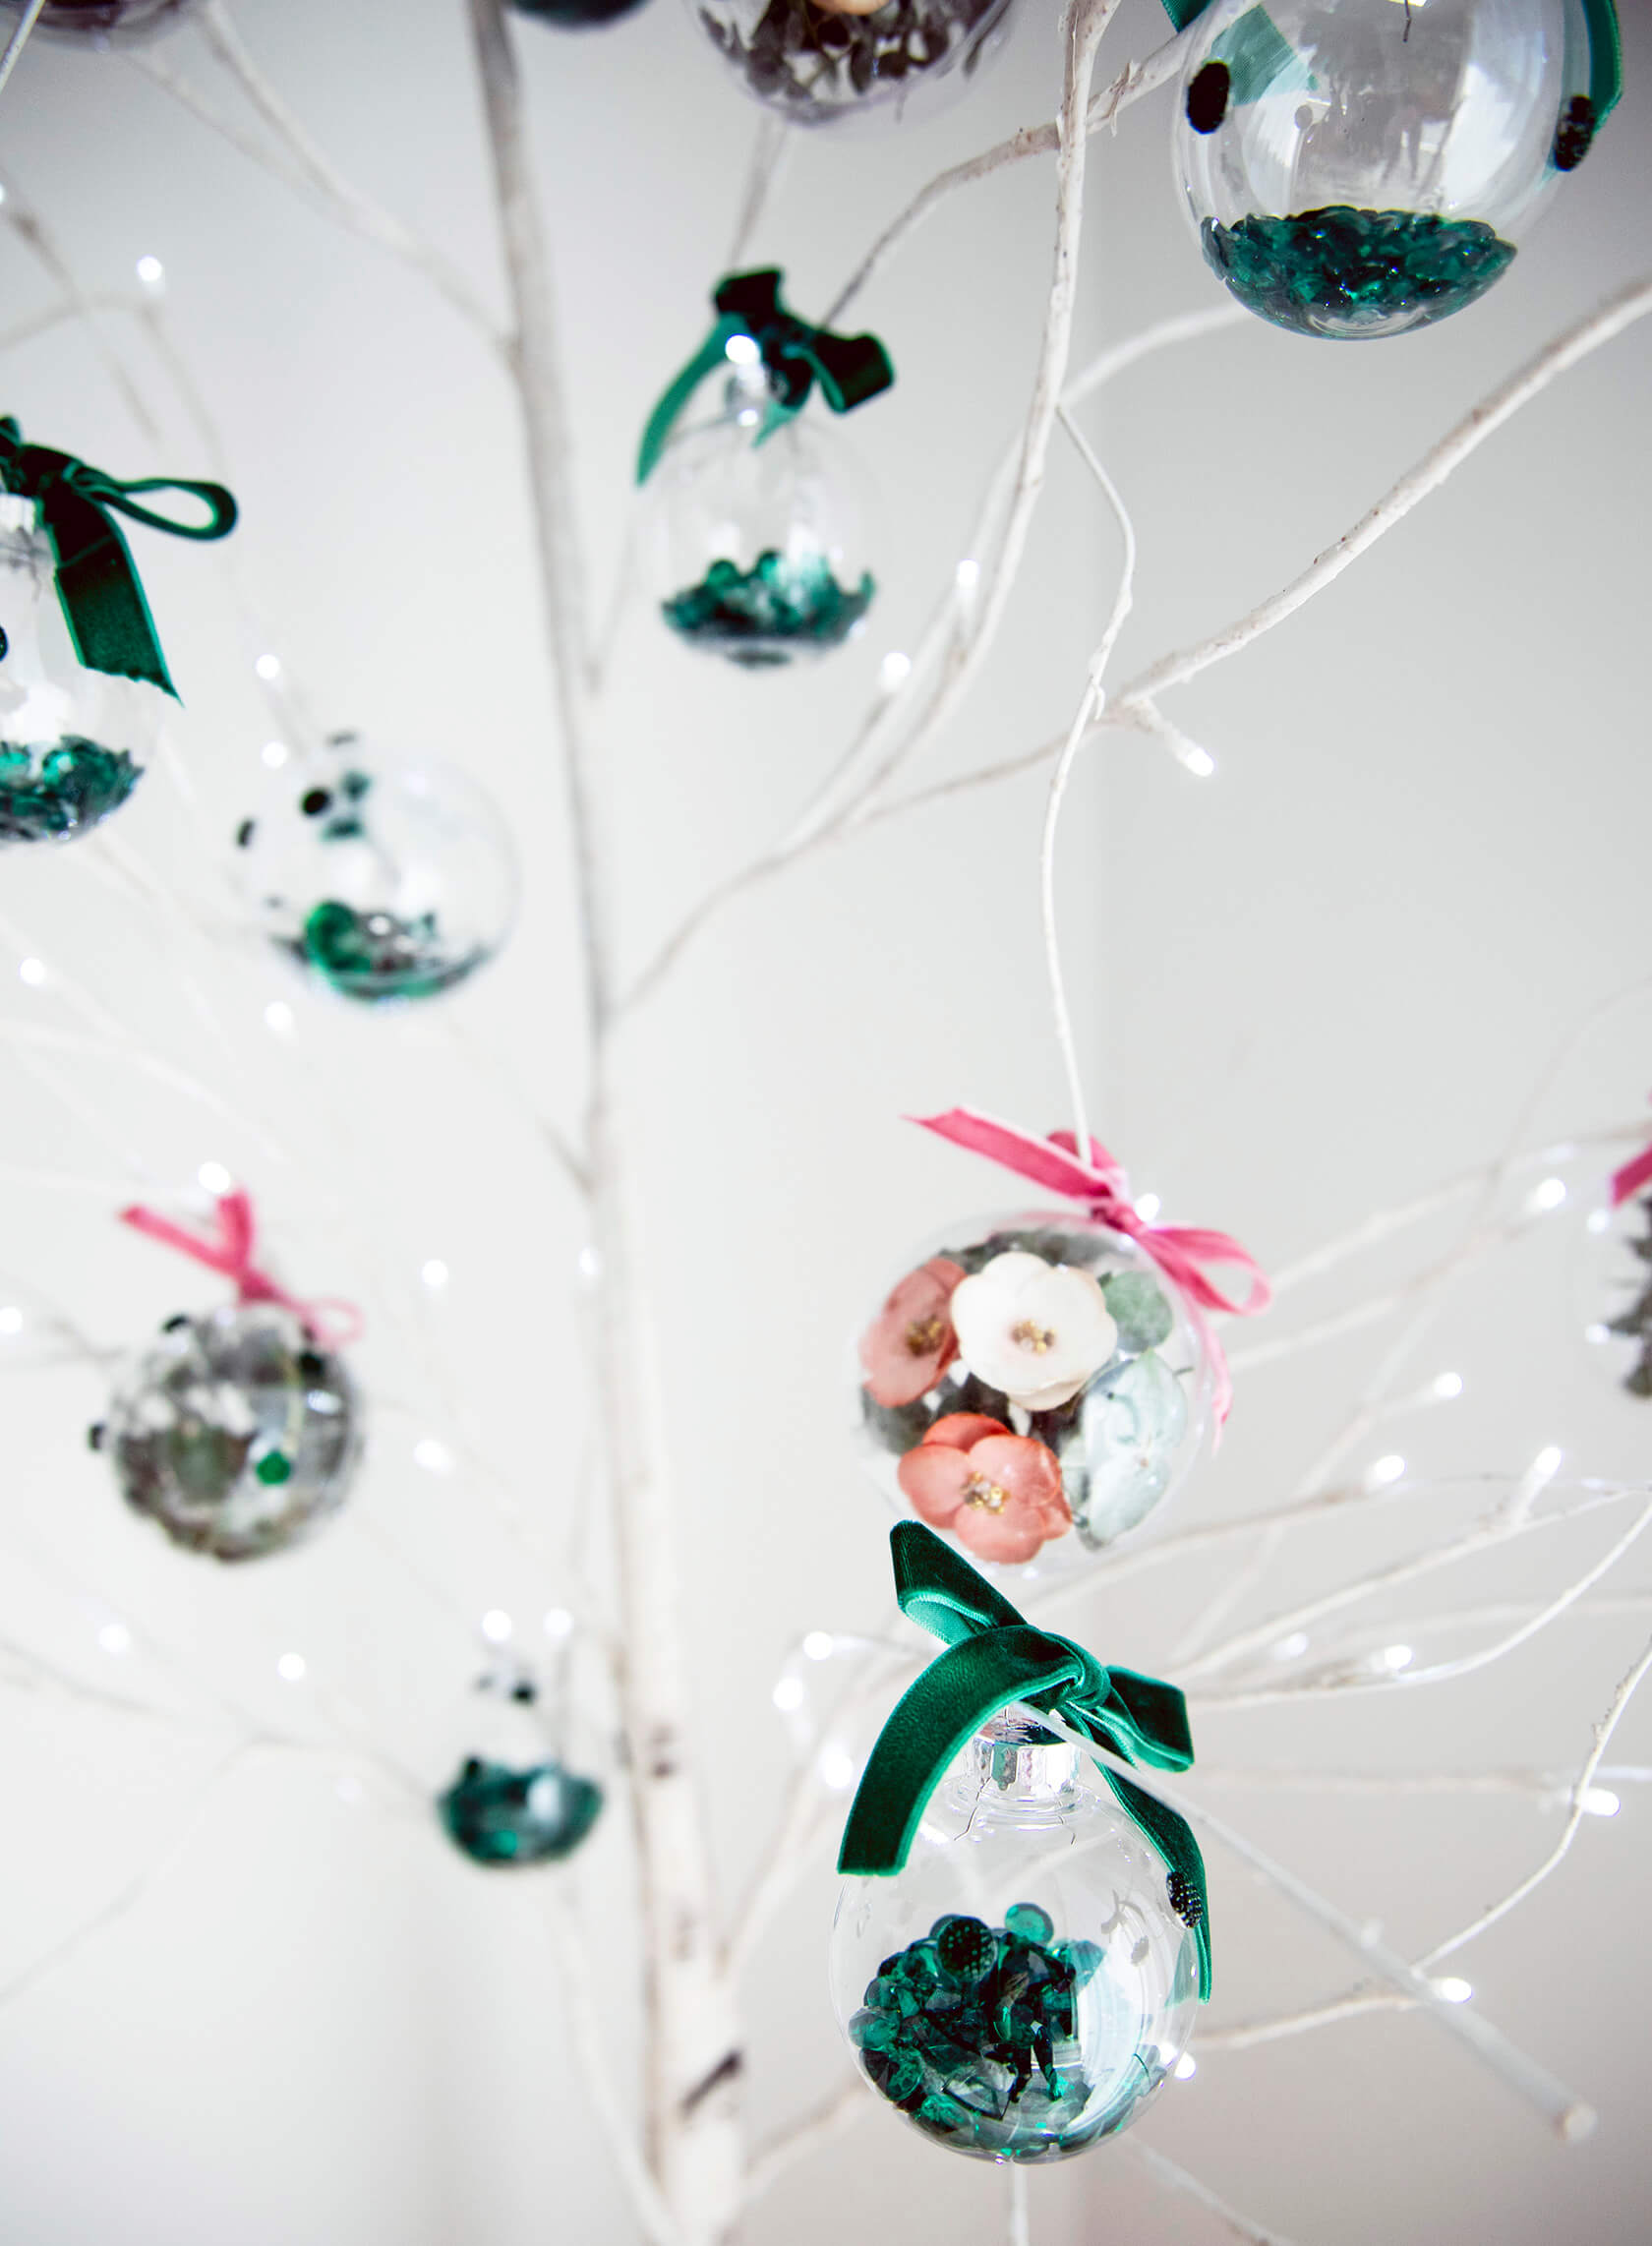 Sydne Style shows diy ornament ideas with emerald jewels and flowers